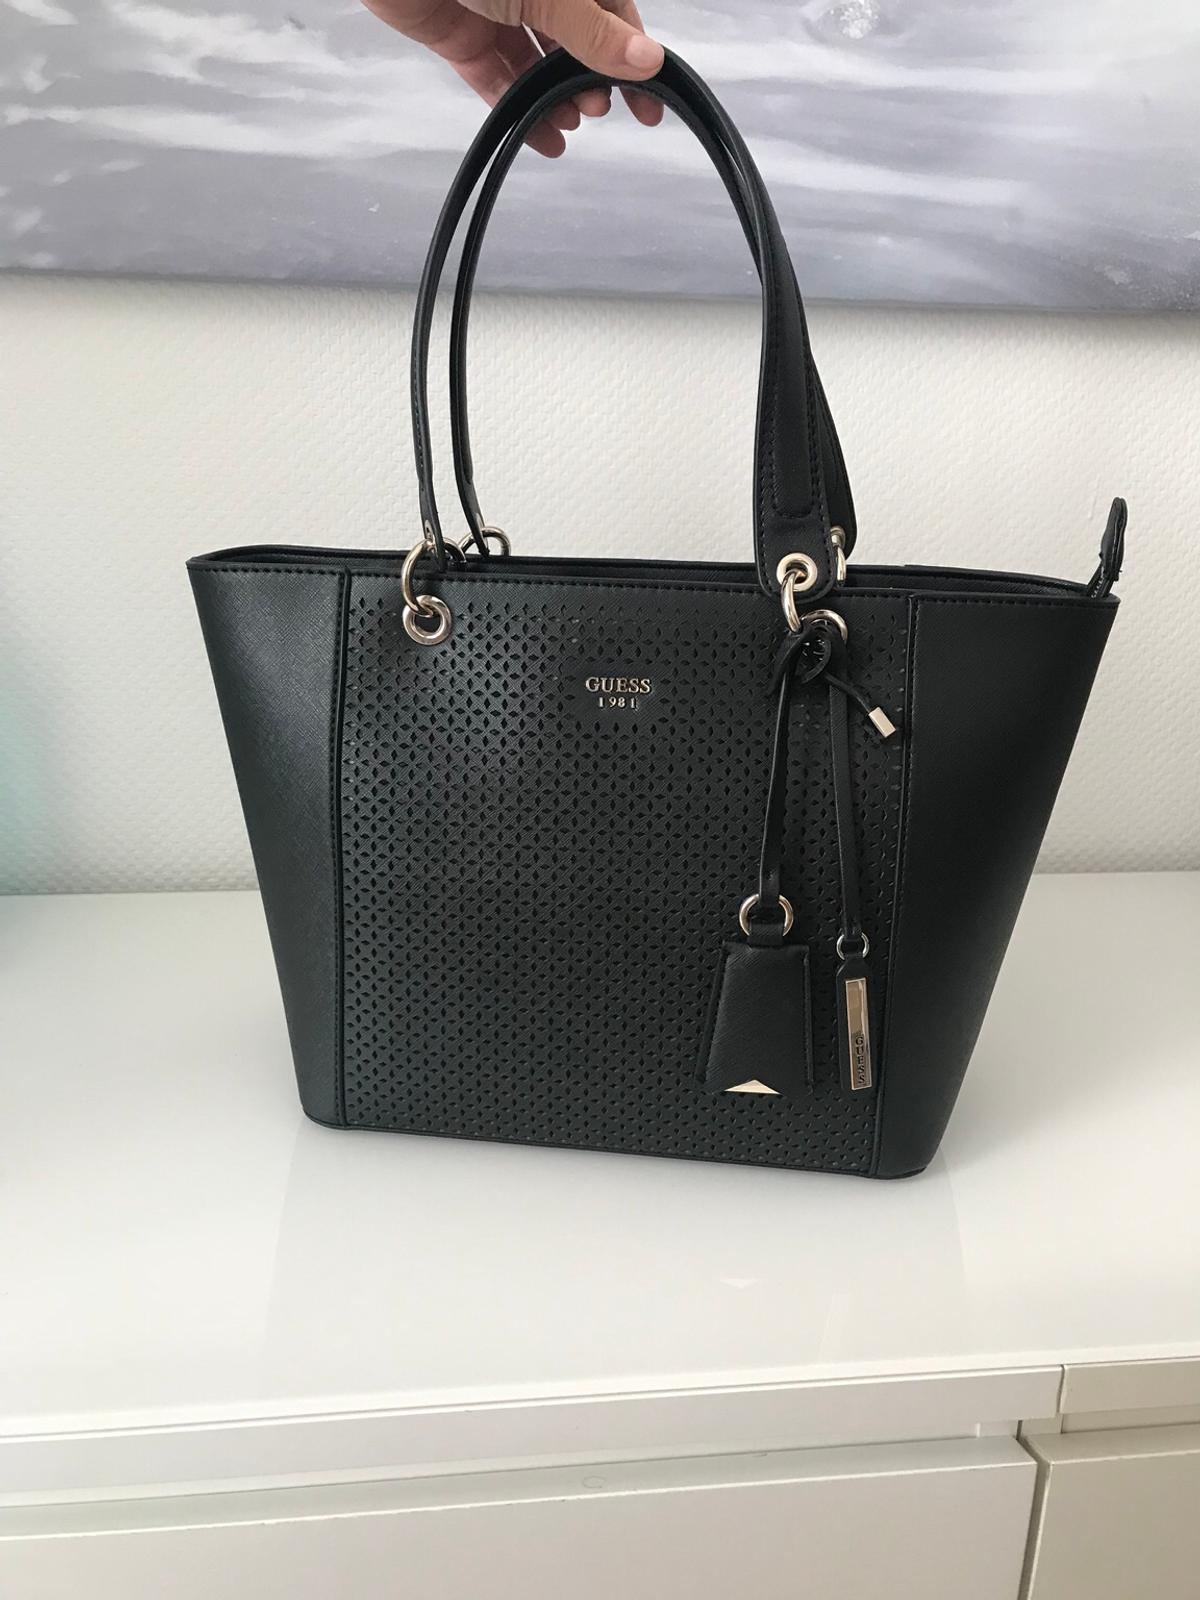 233372777c8a3 Shpock For In München Tasche Schwarz €85 80802 00 Sale Guess MVpUzqS